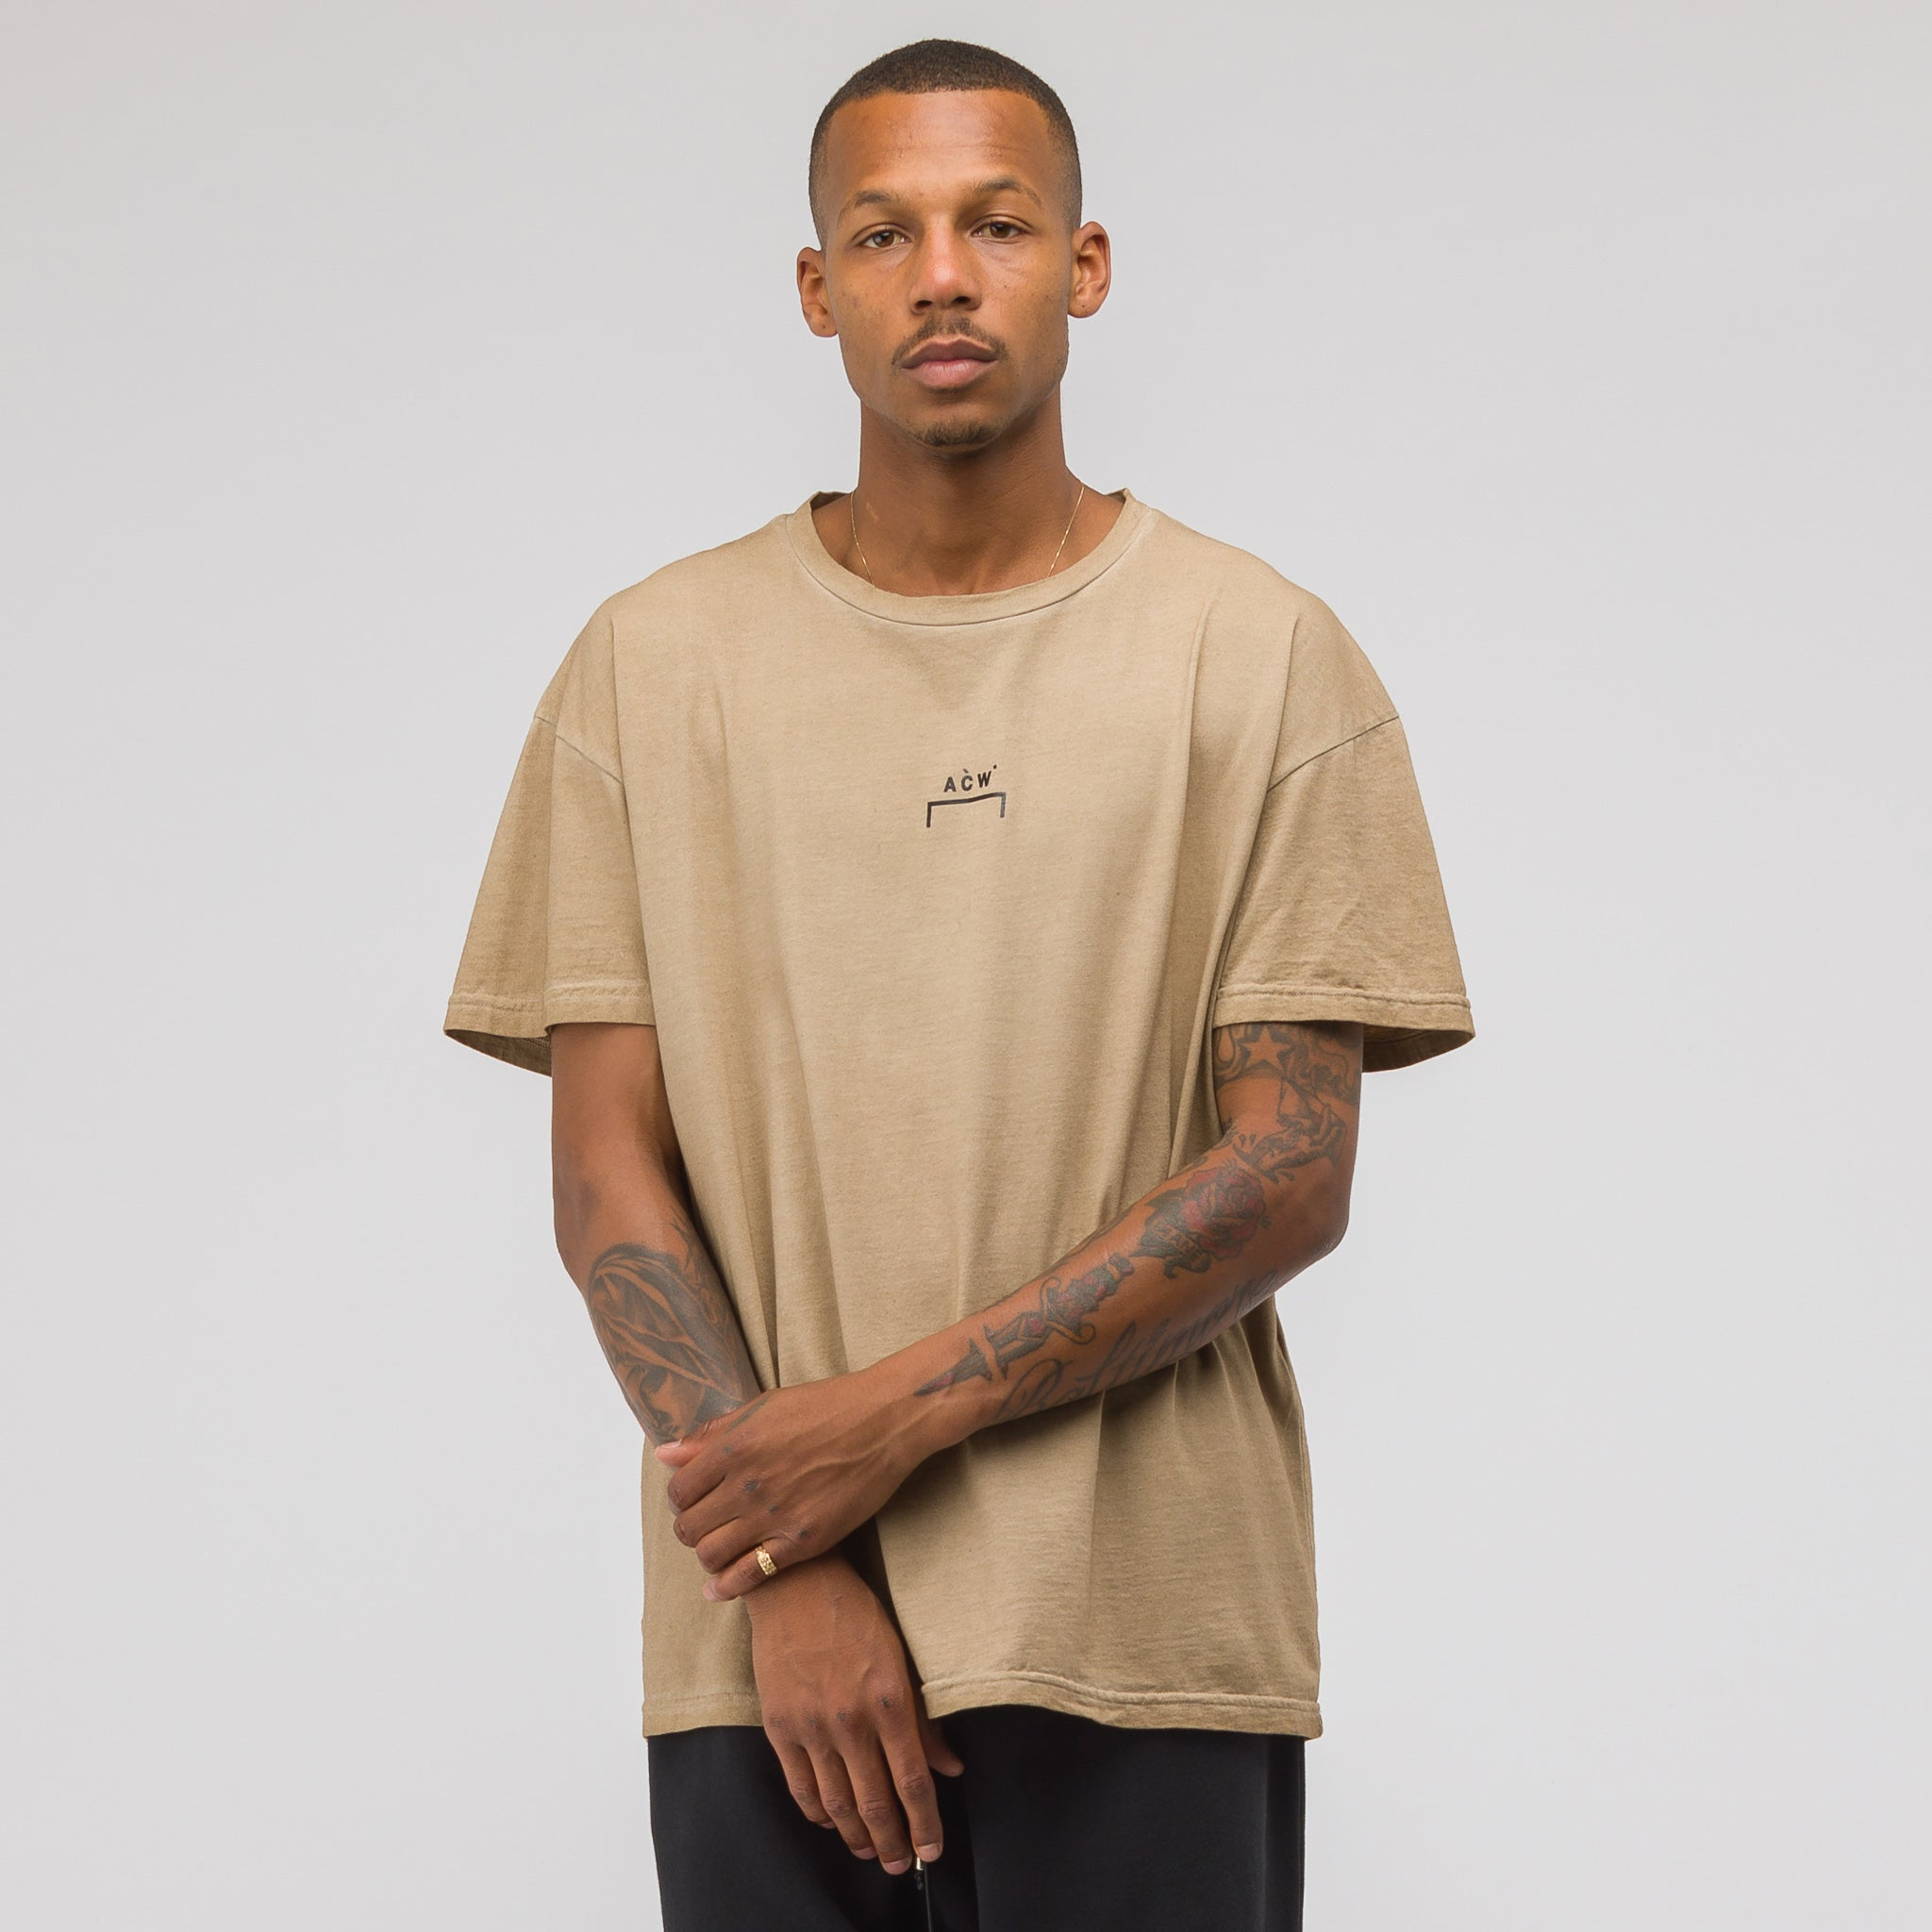 ACW Bracket Logo T-Shirt in Tan